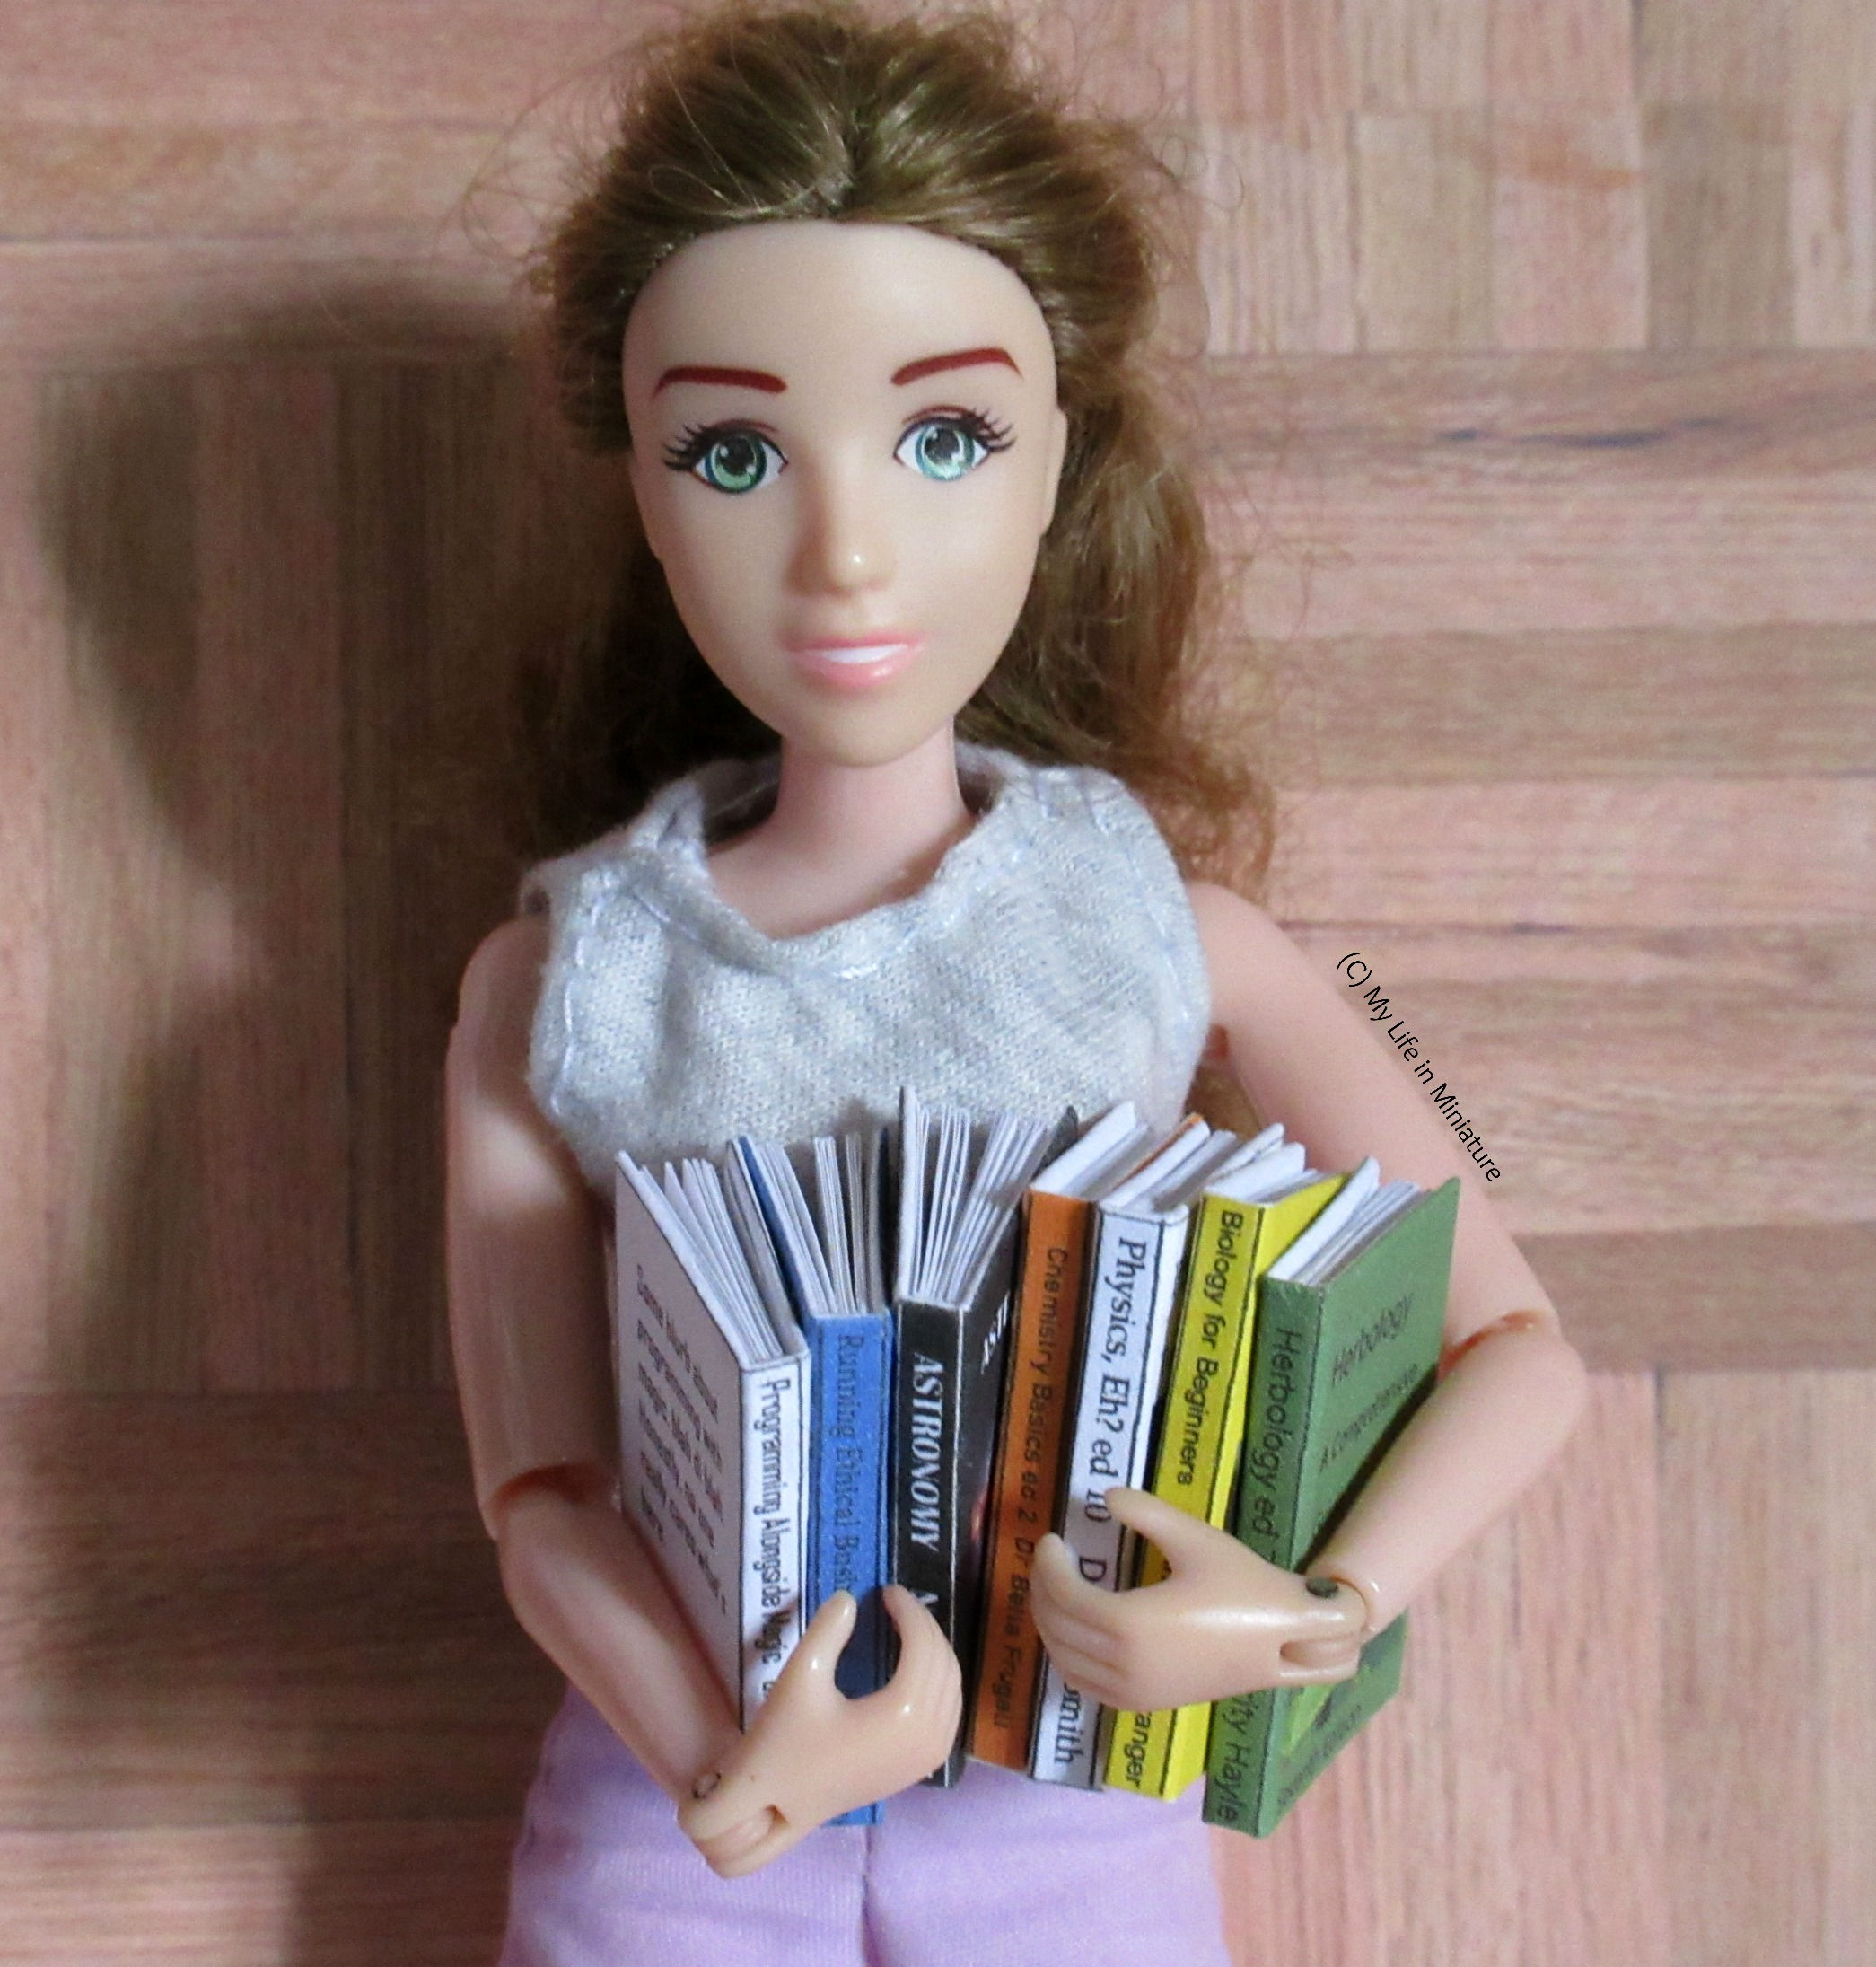 Sarah holds all seven textbooks in her arms, standing against a wood parquet background. She looks at the camera.